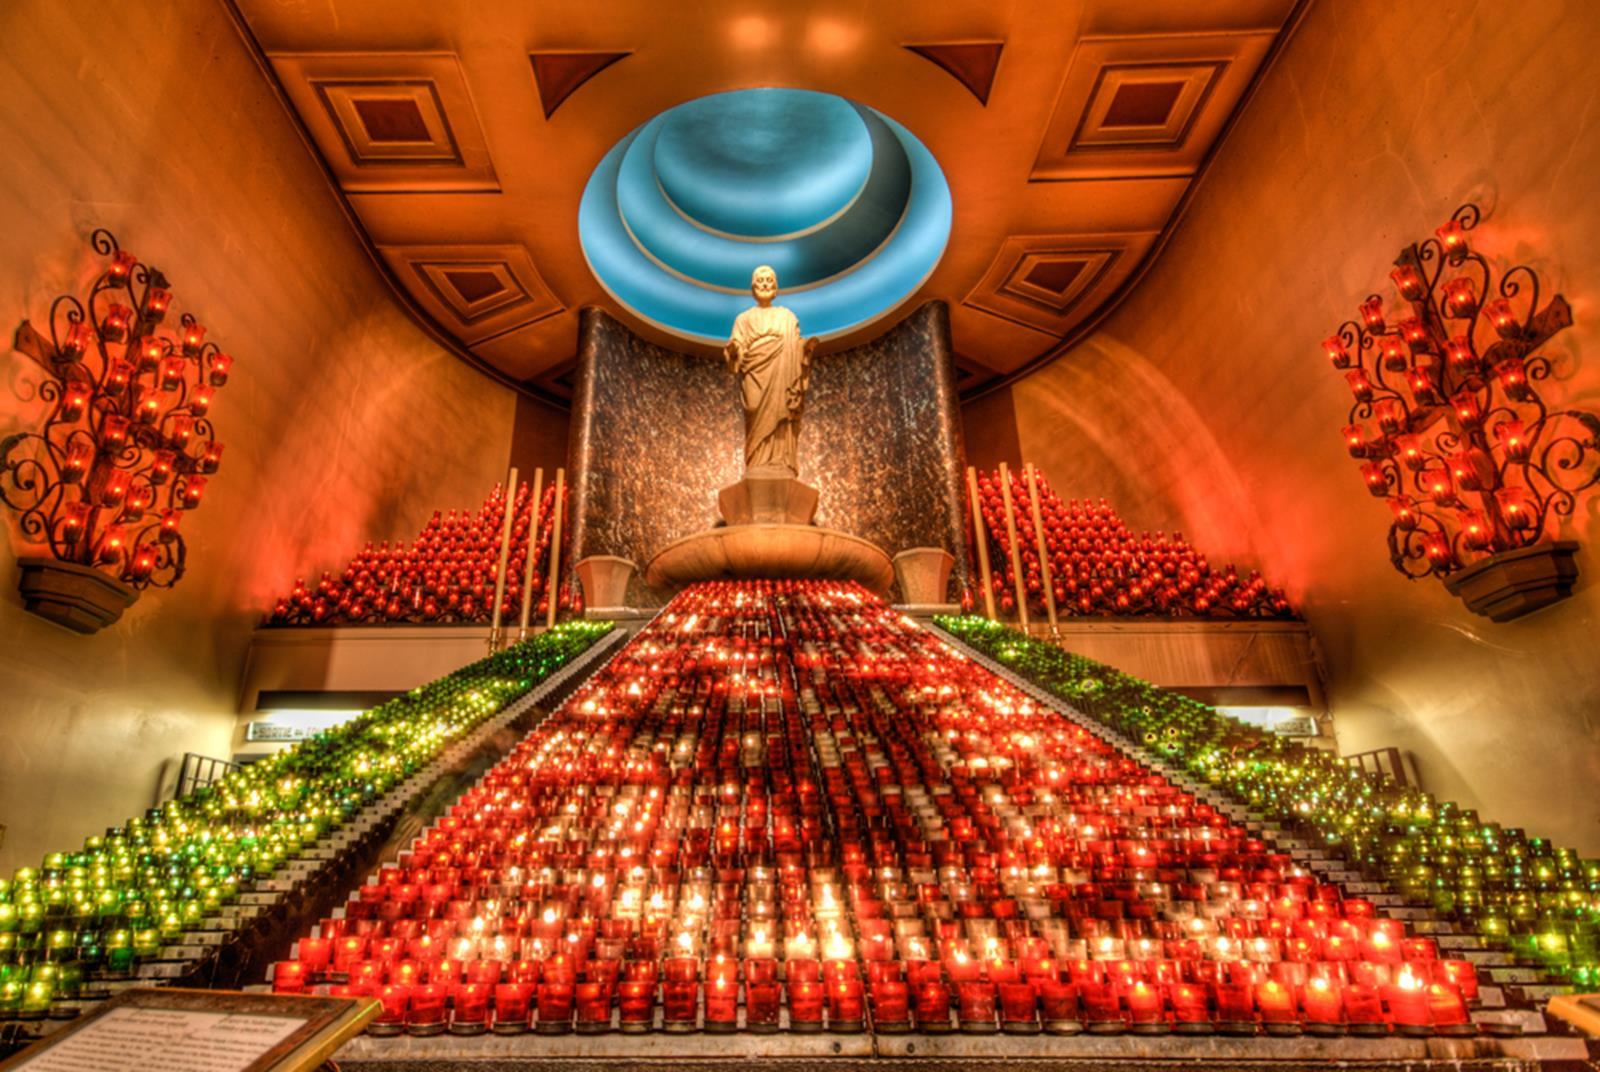 What Is The Best Way To Experience The Shrines Of Quebec